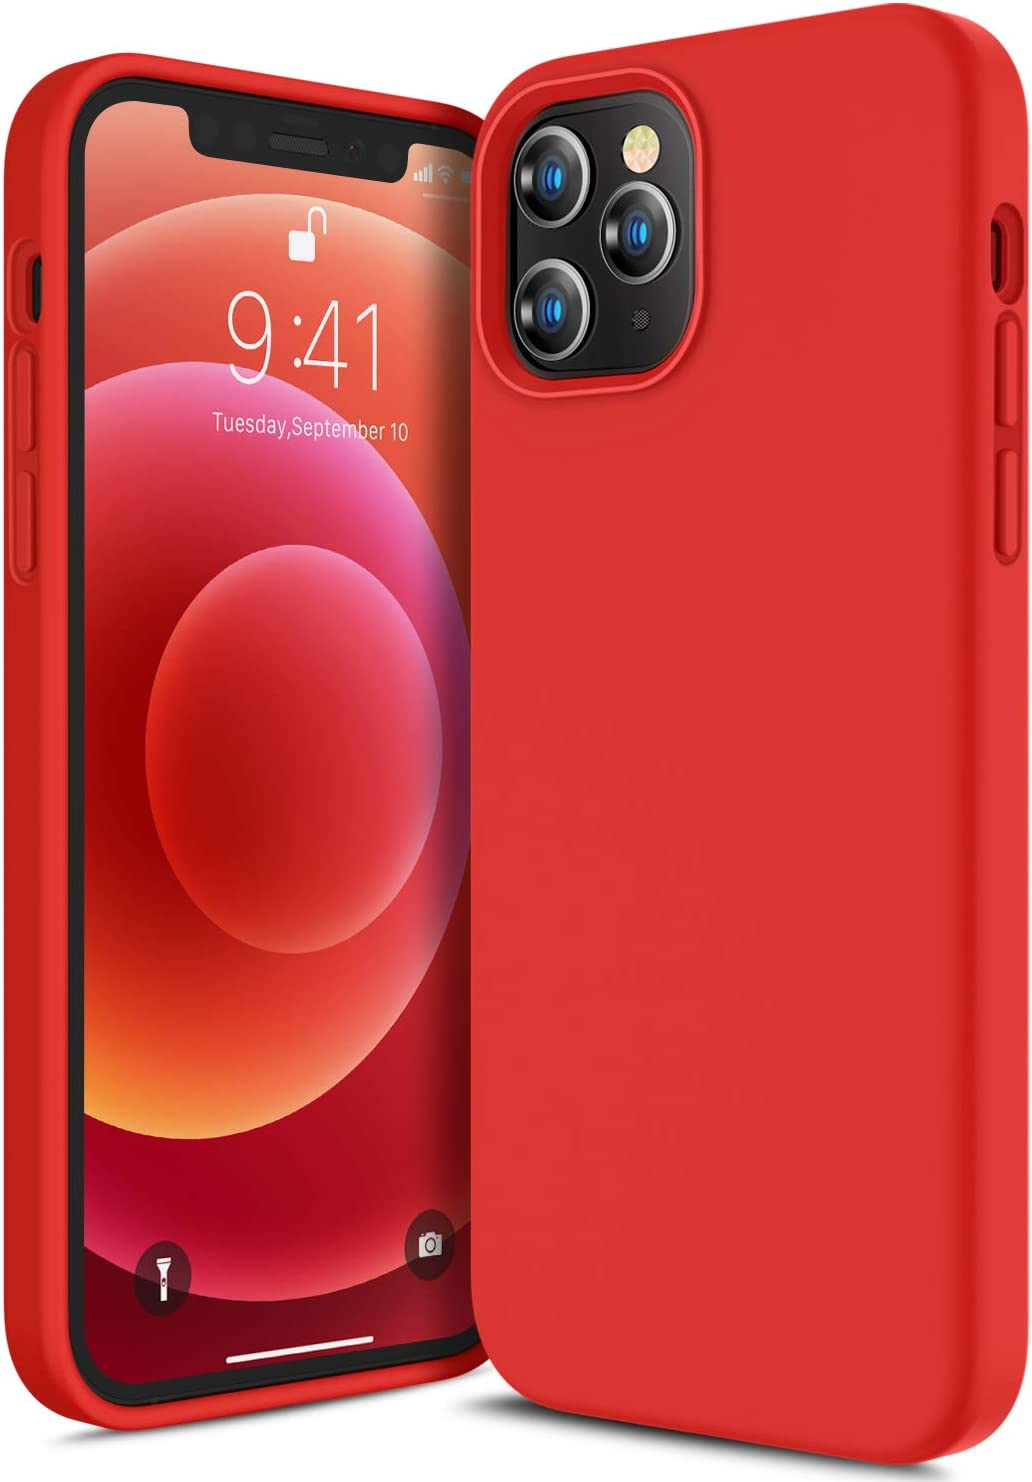 CANSHN Compatible with iPhone 12 Case and iPhone 12 Pro Case 6.1'' 2020, Liquid Silicone Soft Gel Rubber Full Body Protection Shockproof Phone Case Cover - Red